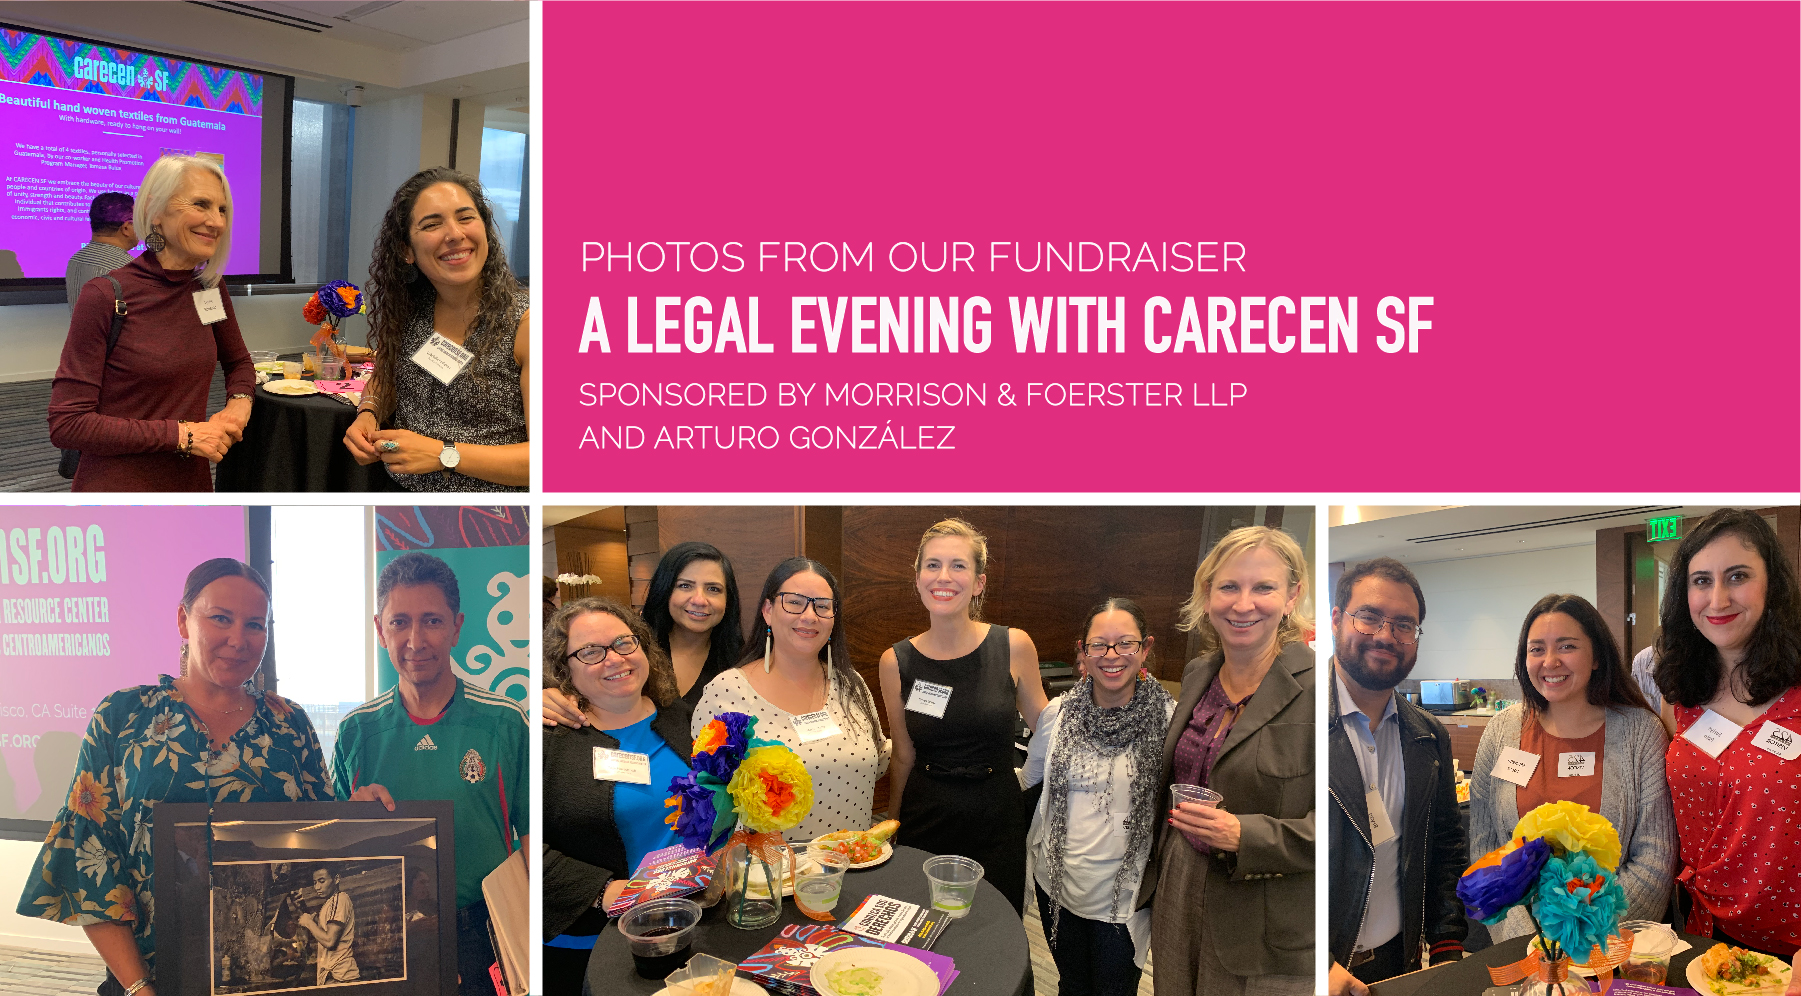 A Legal Evening with CARECEN SF